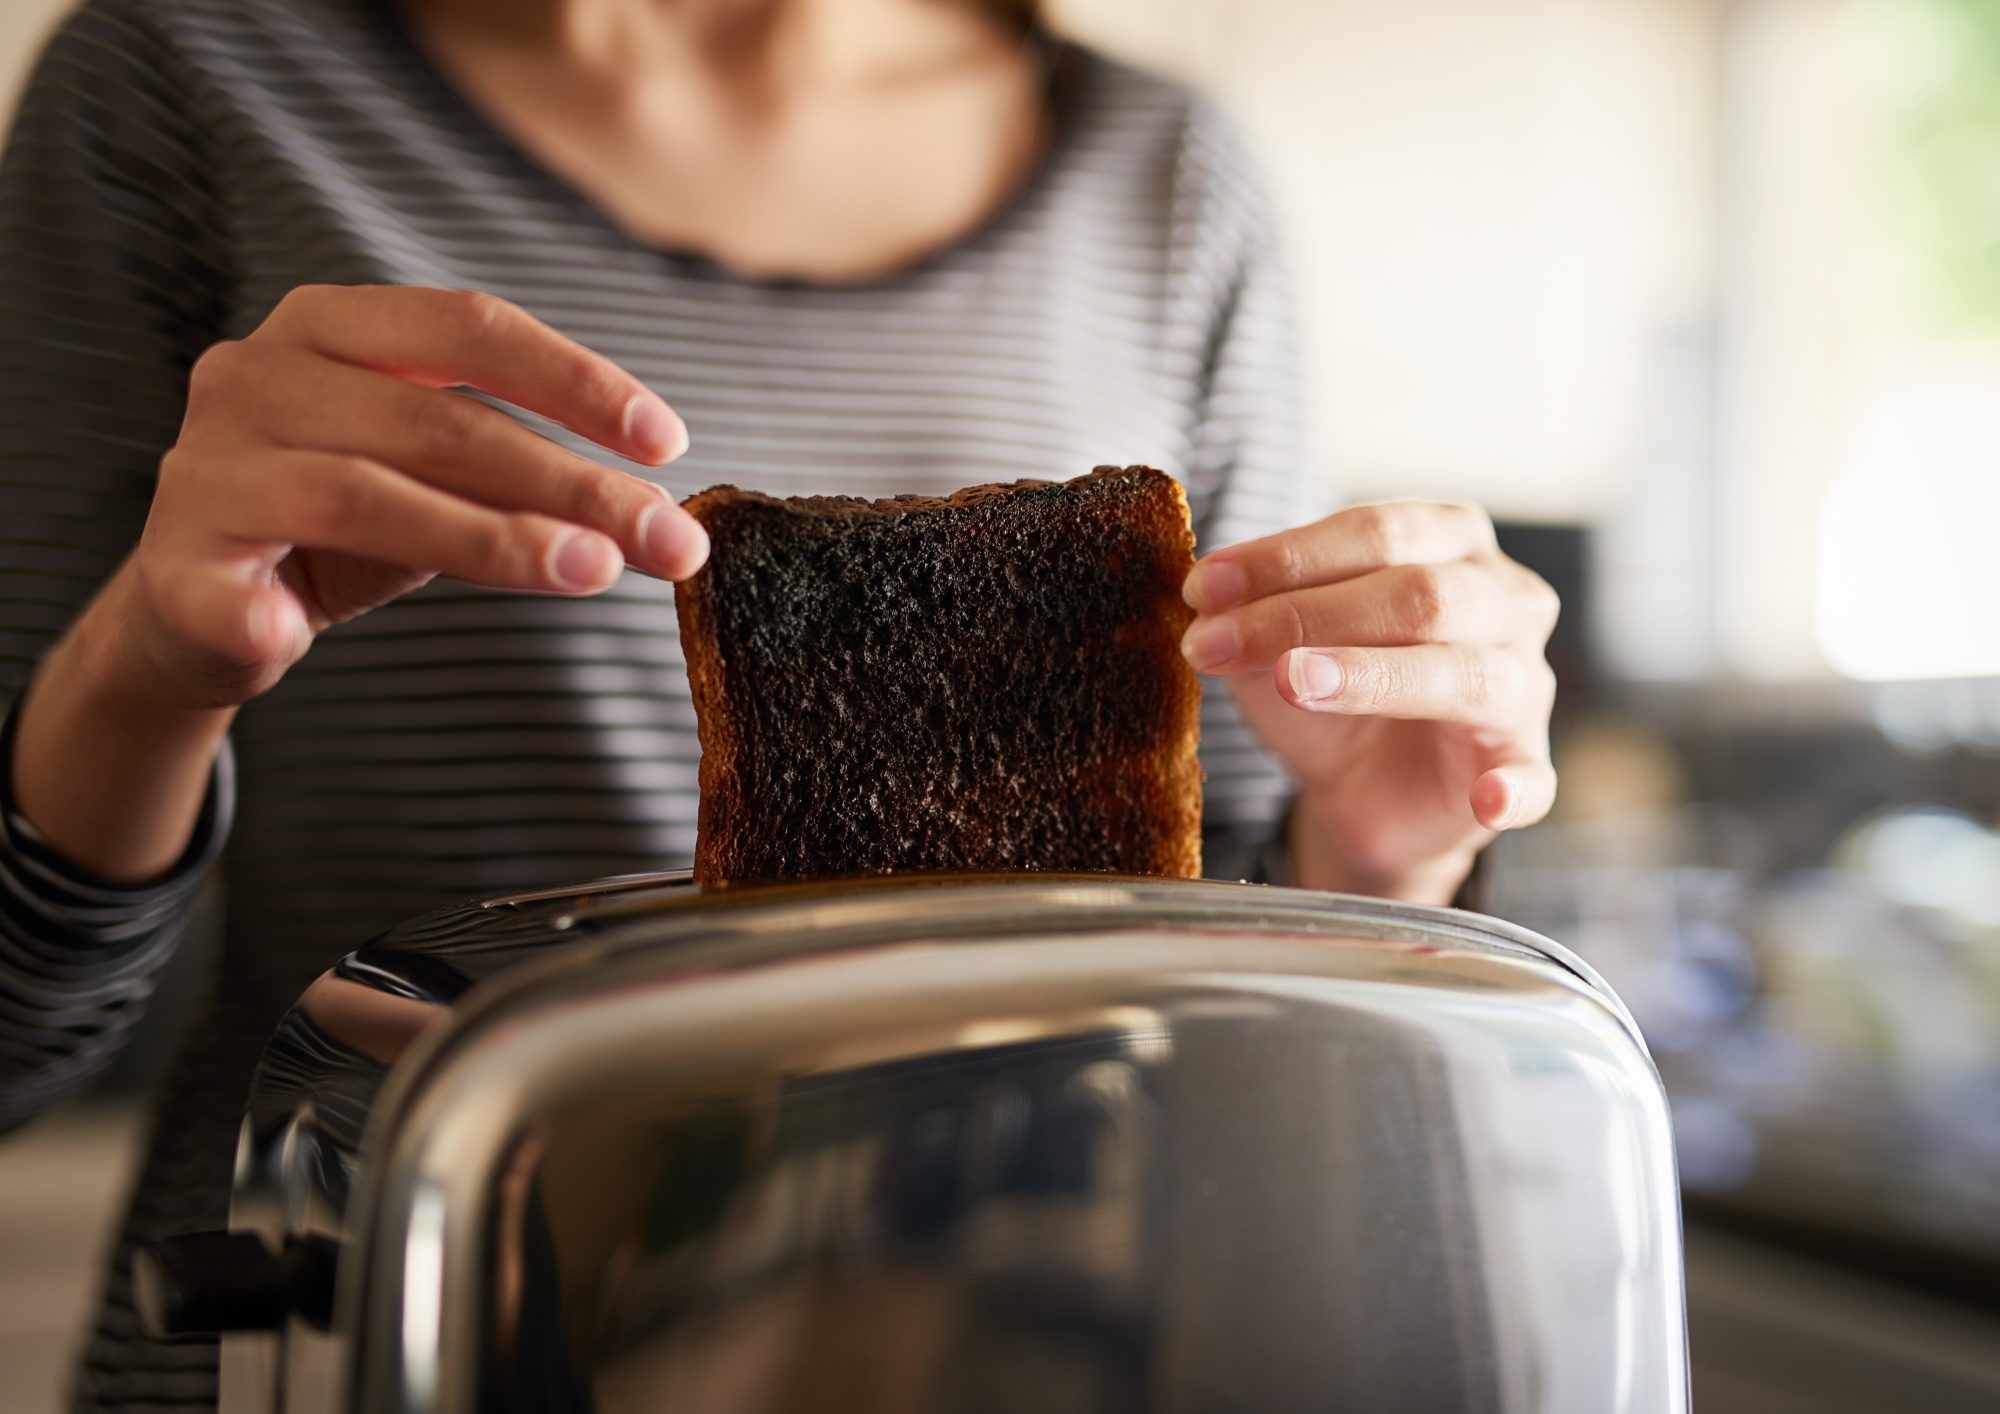 woman removing burned toast from a toaster